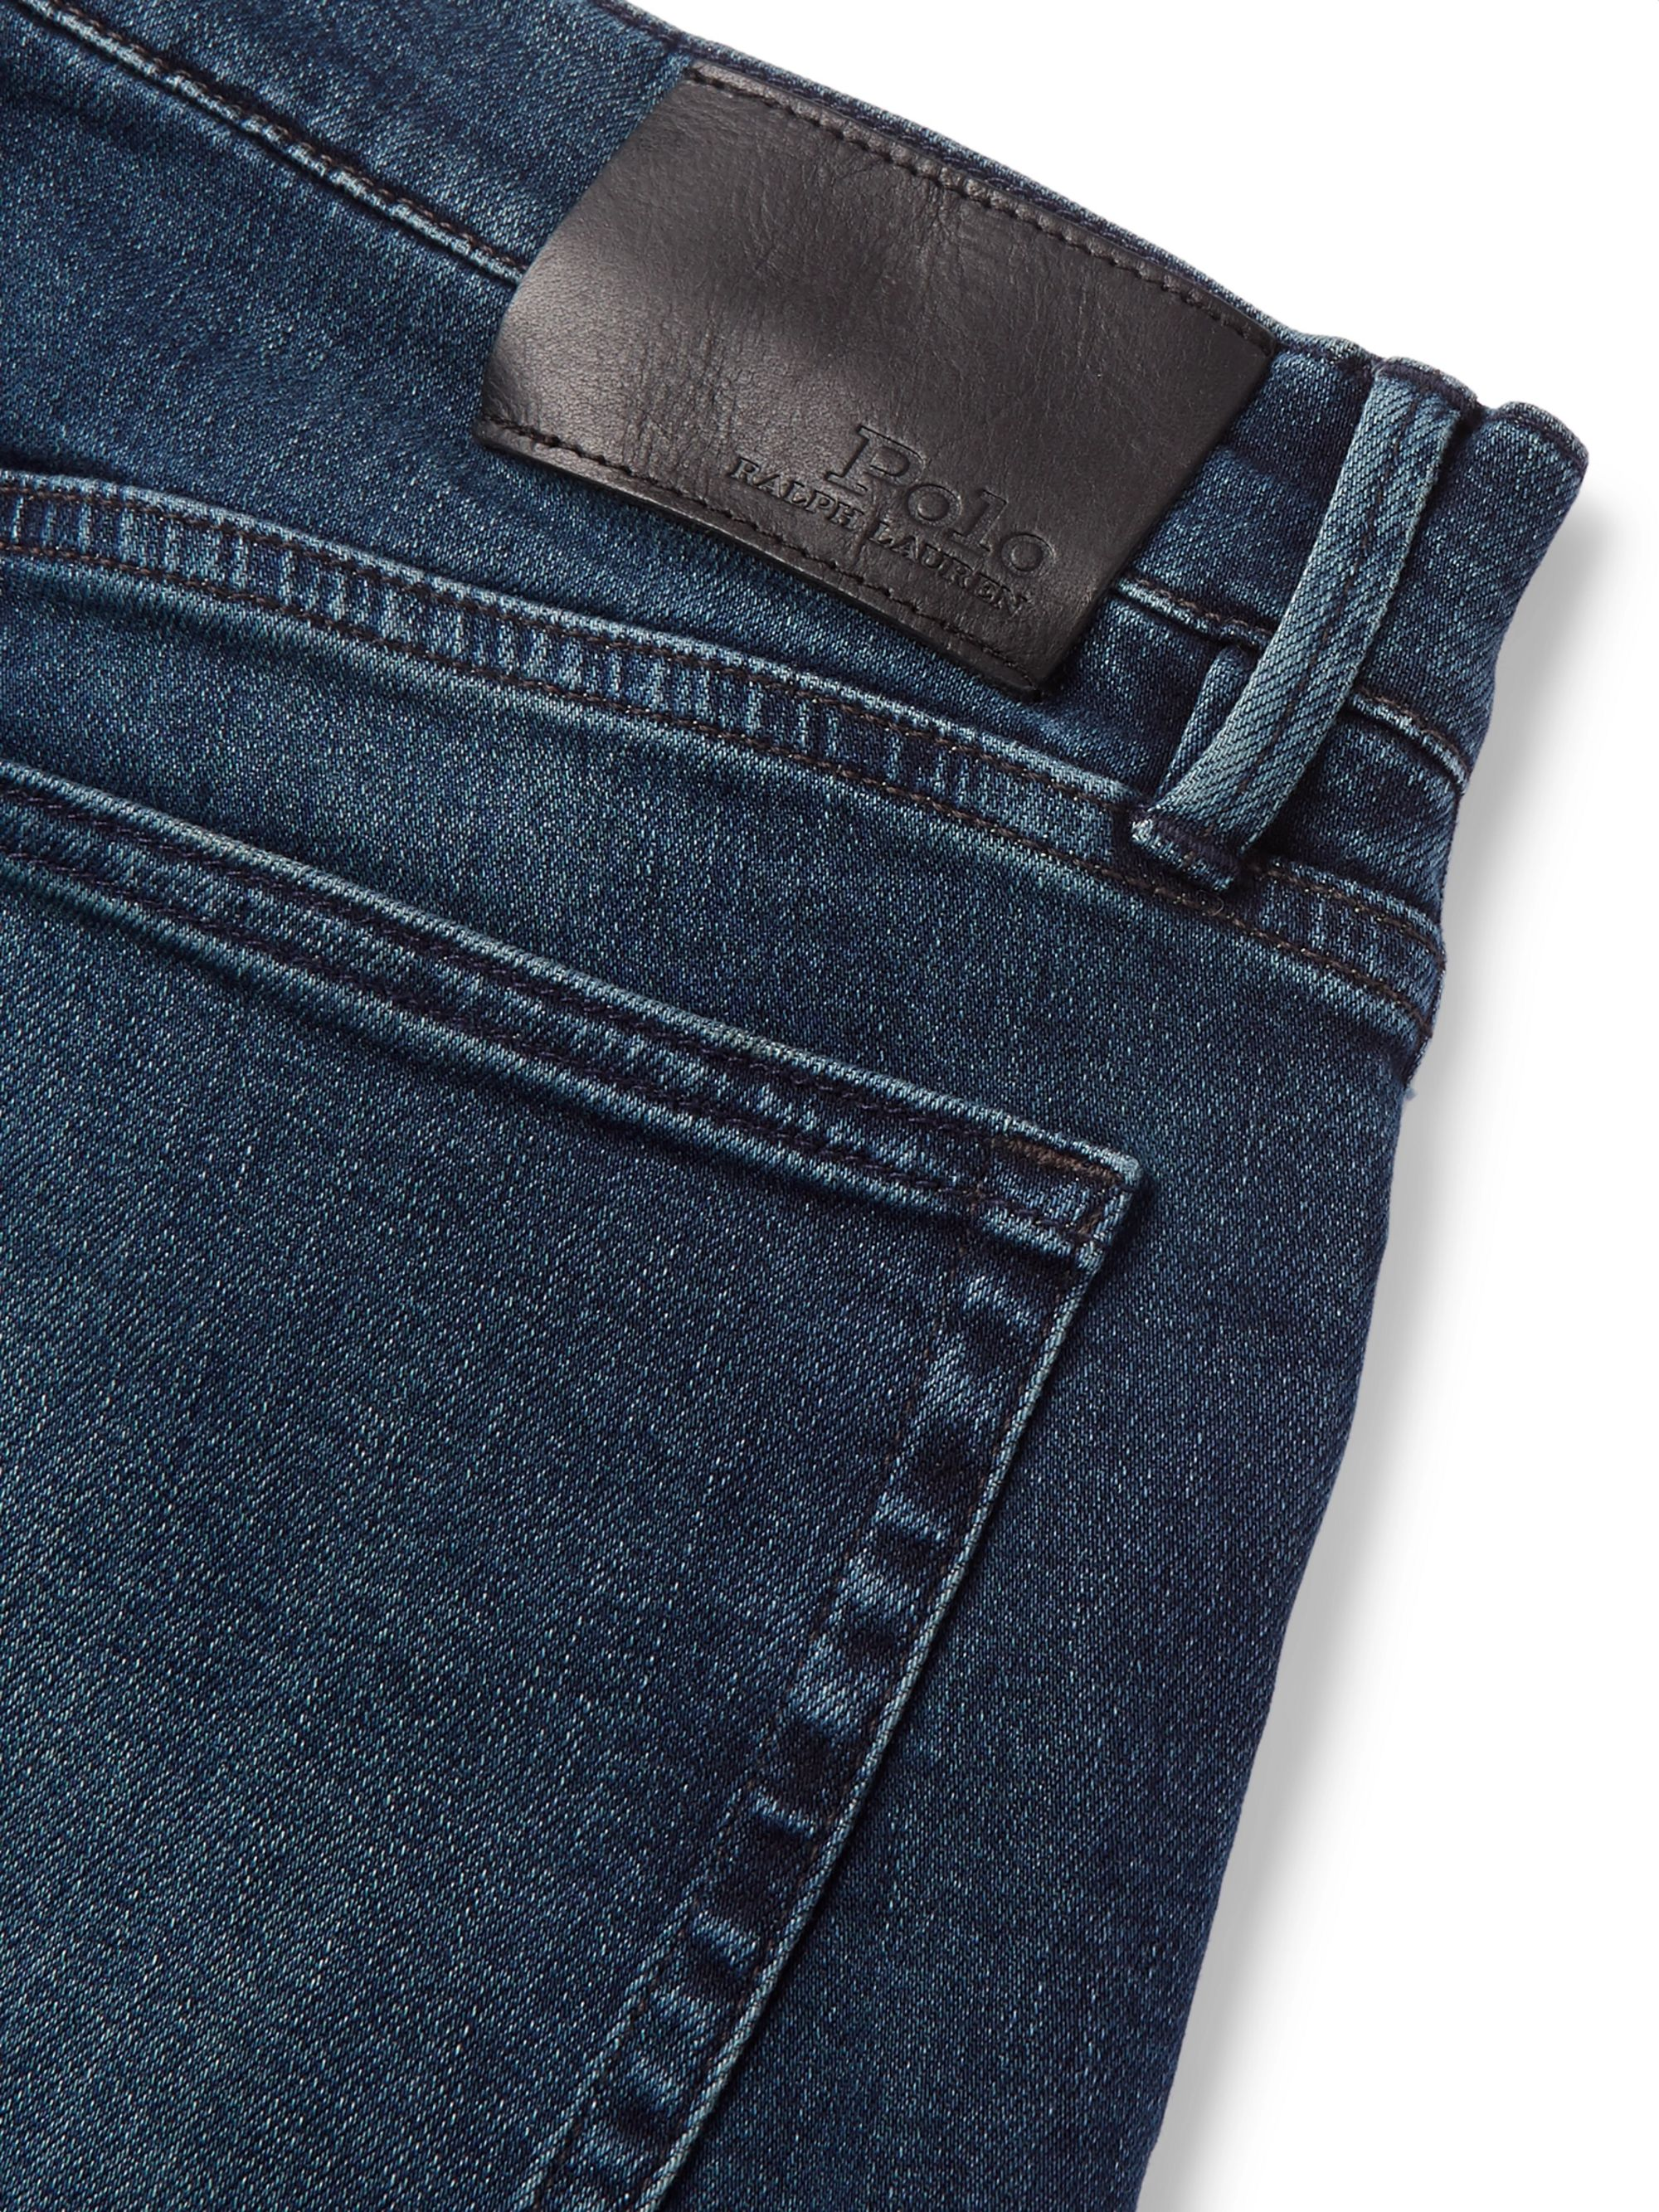 Sullivan Slim Denim Jeans Stretch Fit BerCxod